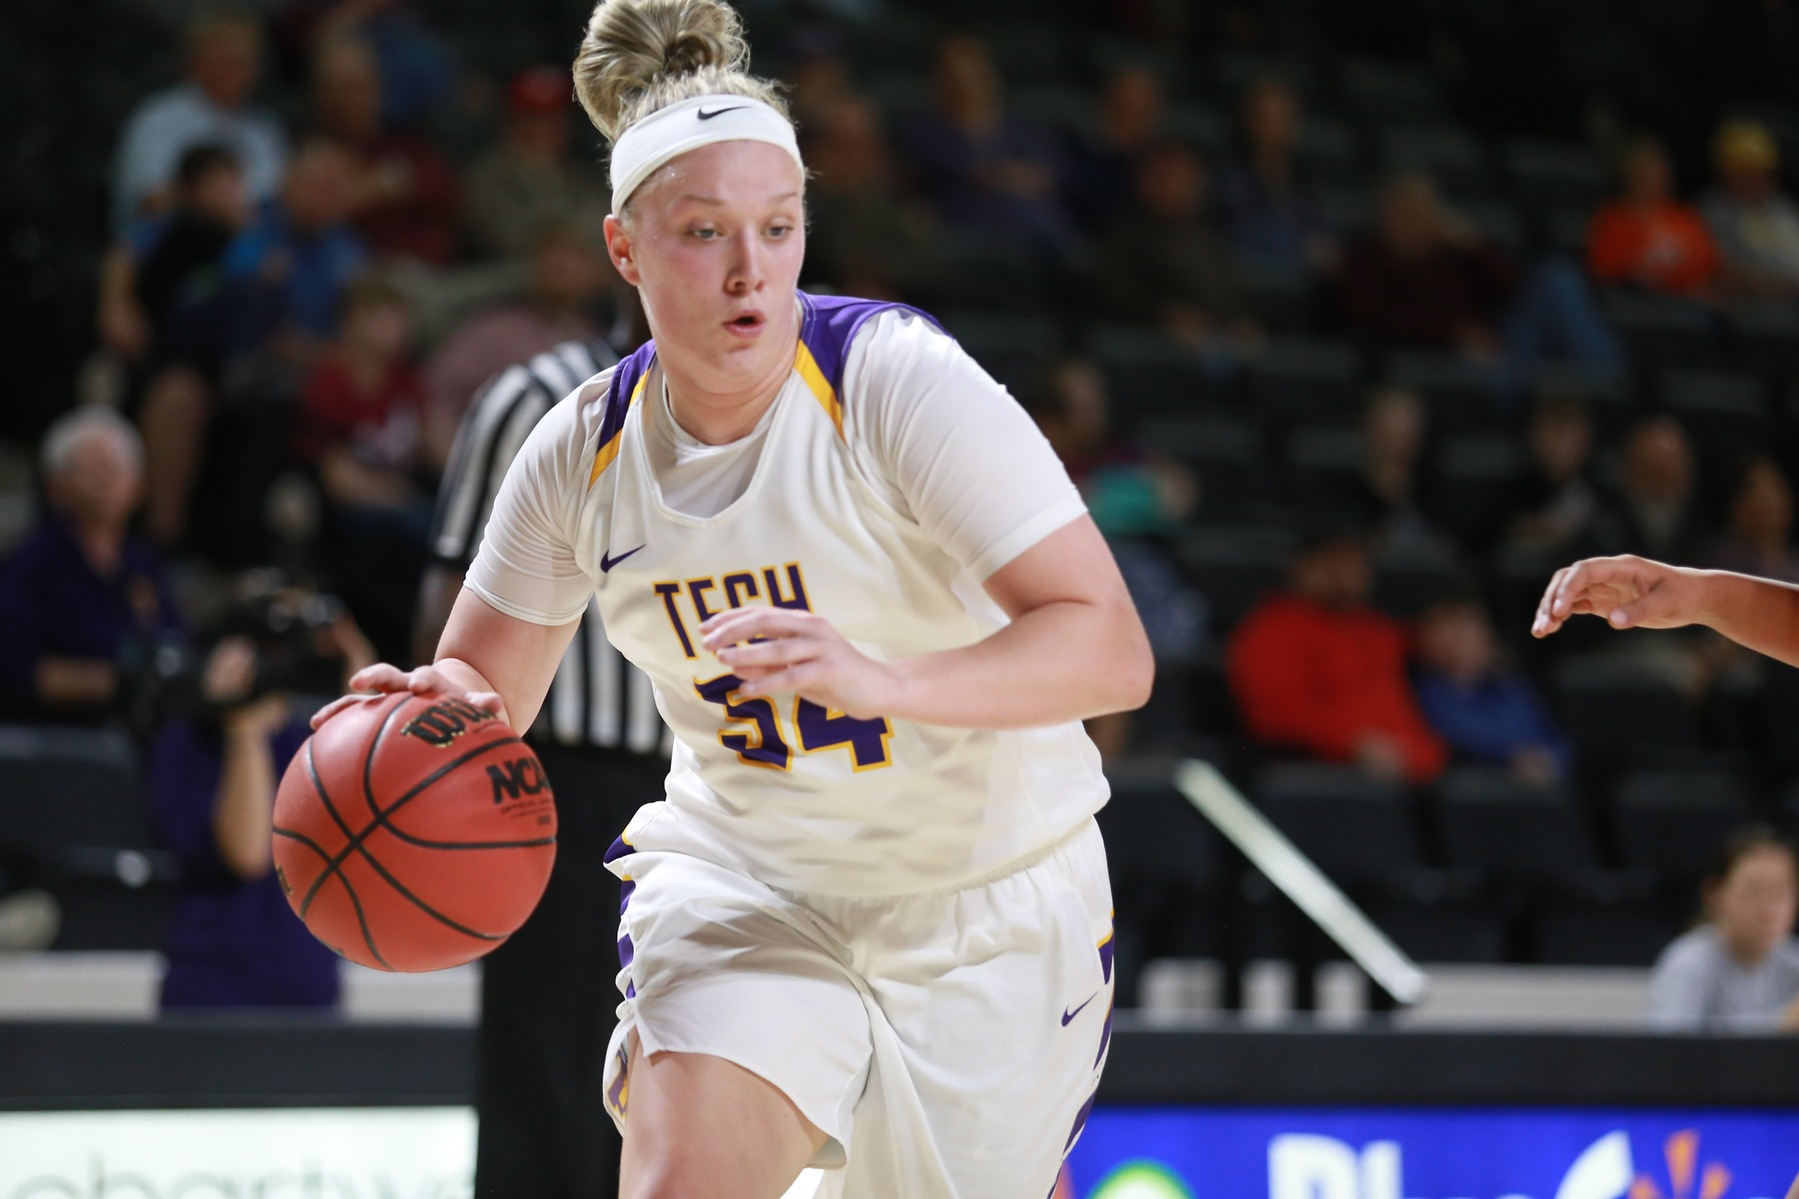 Tech rights ship; defeats Austin Peay for first OVC win